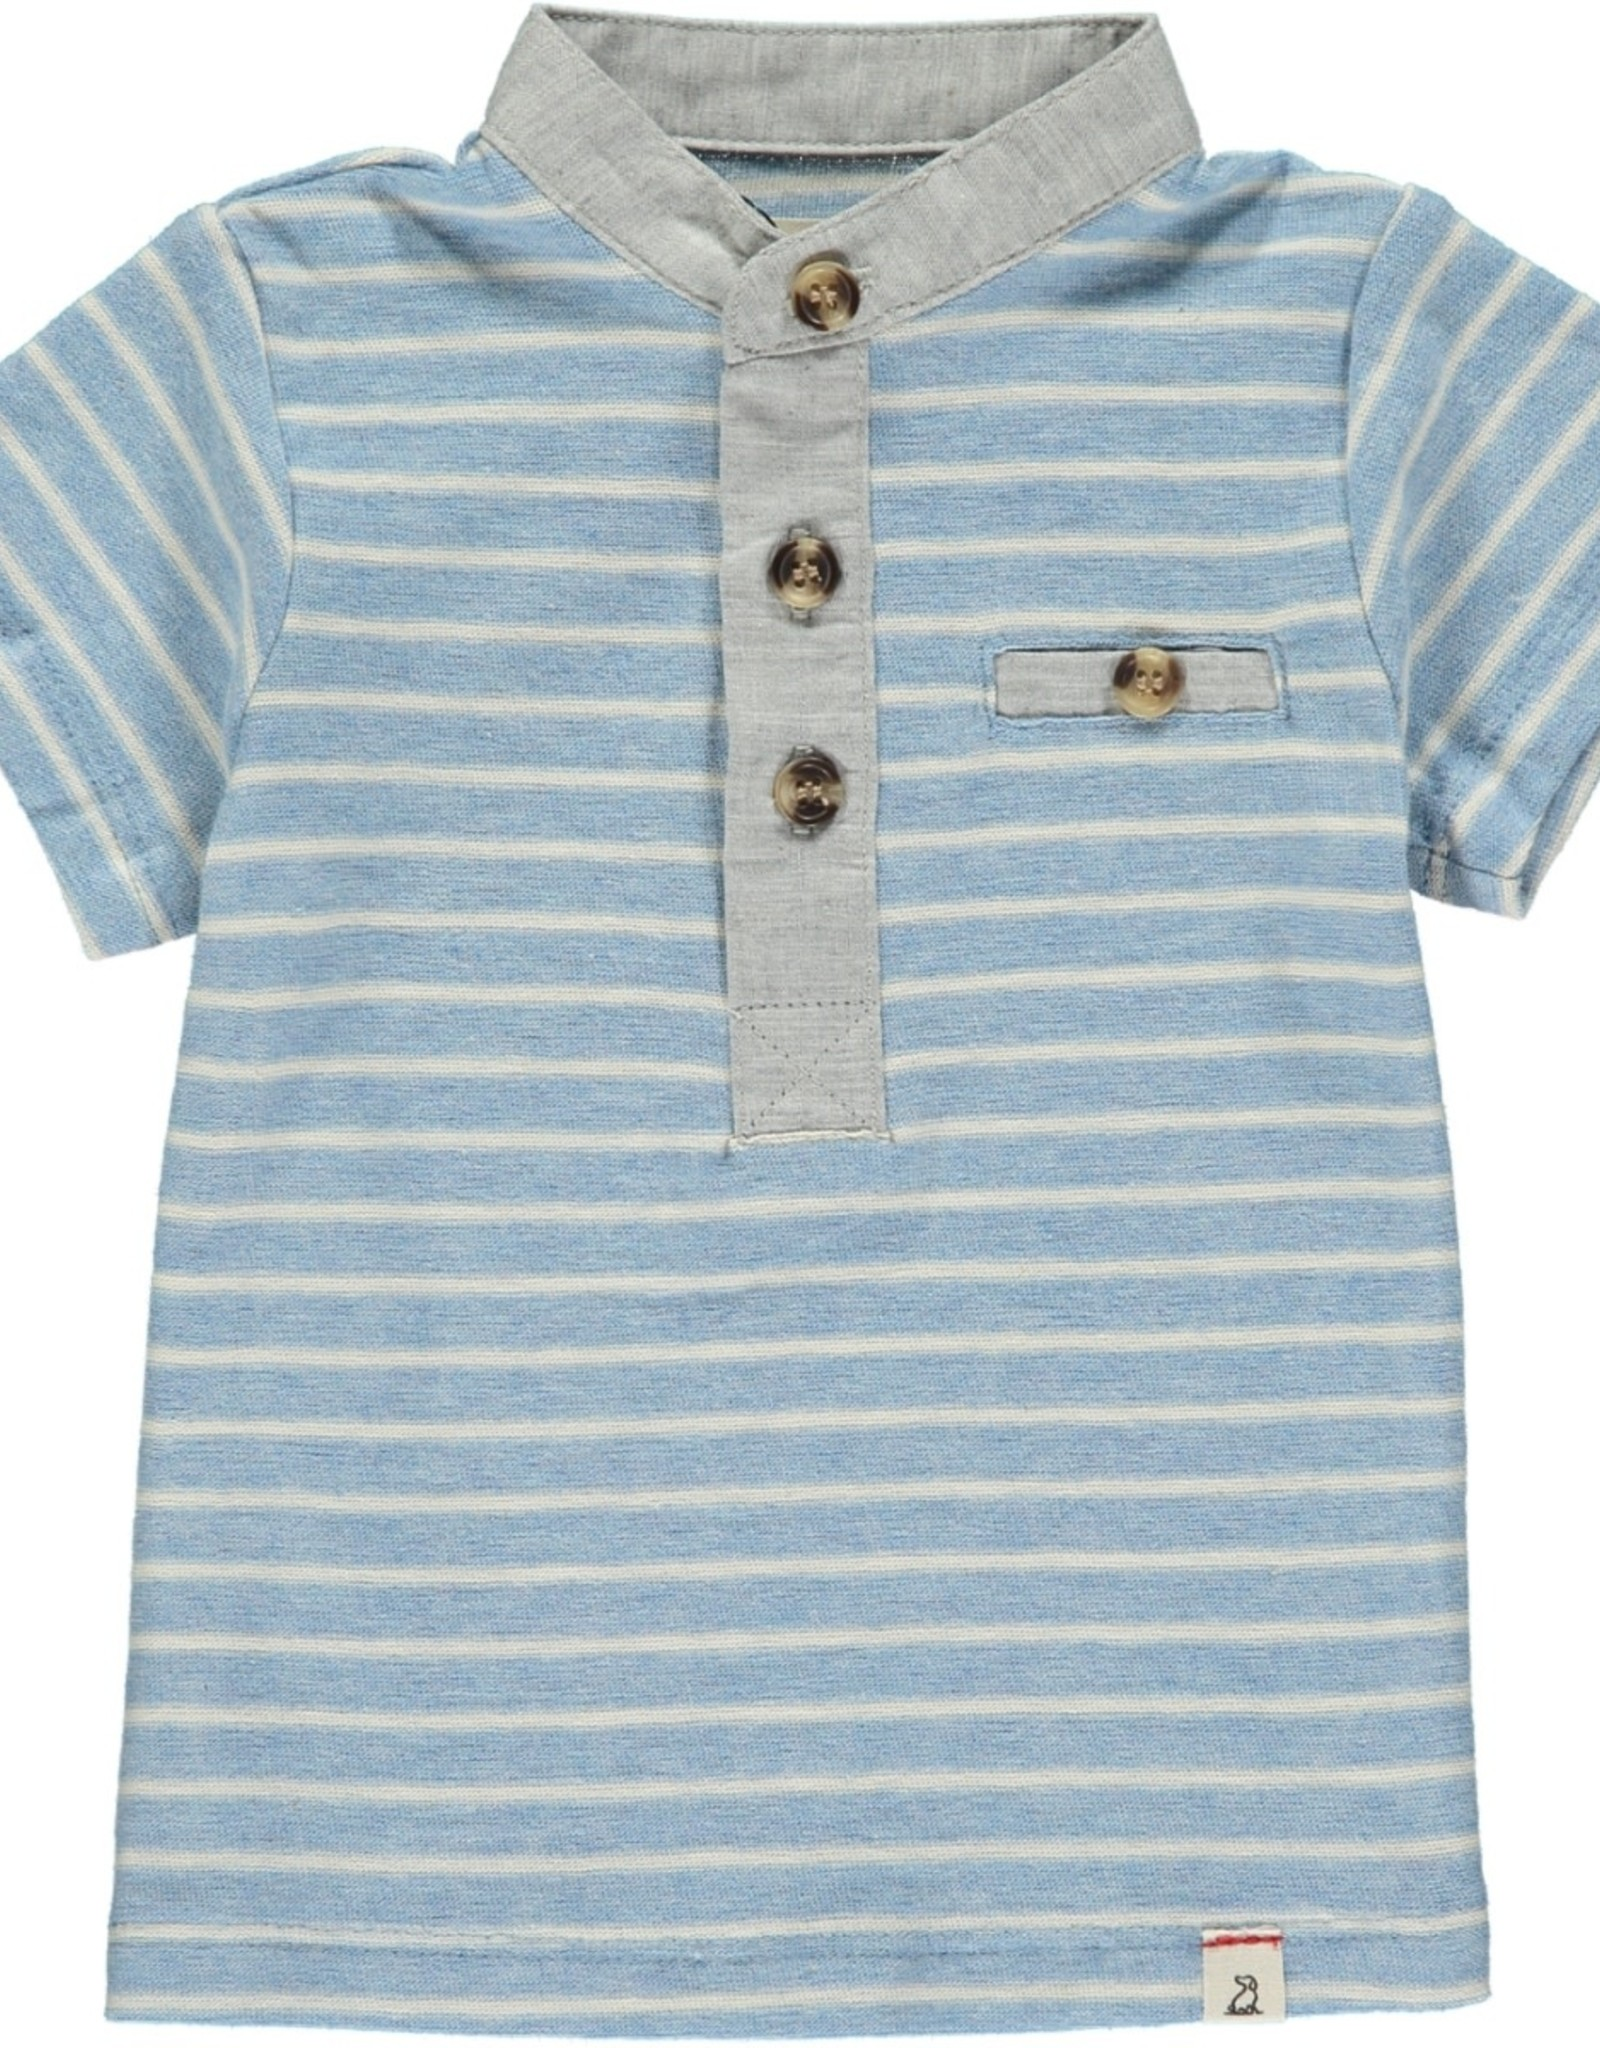 Blue/white stripe Henley